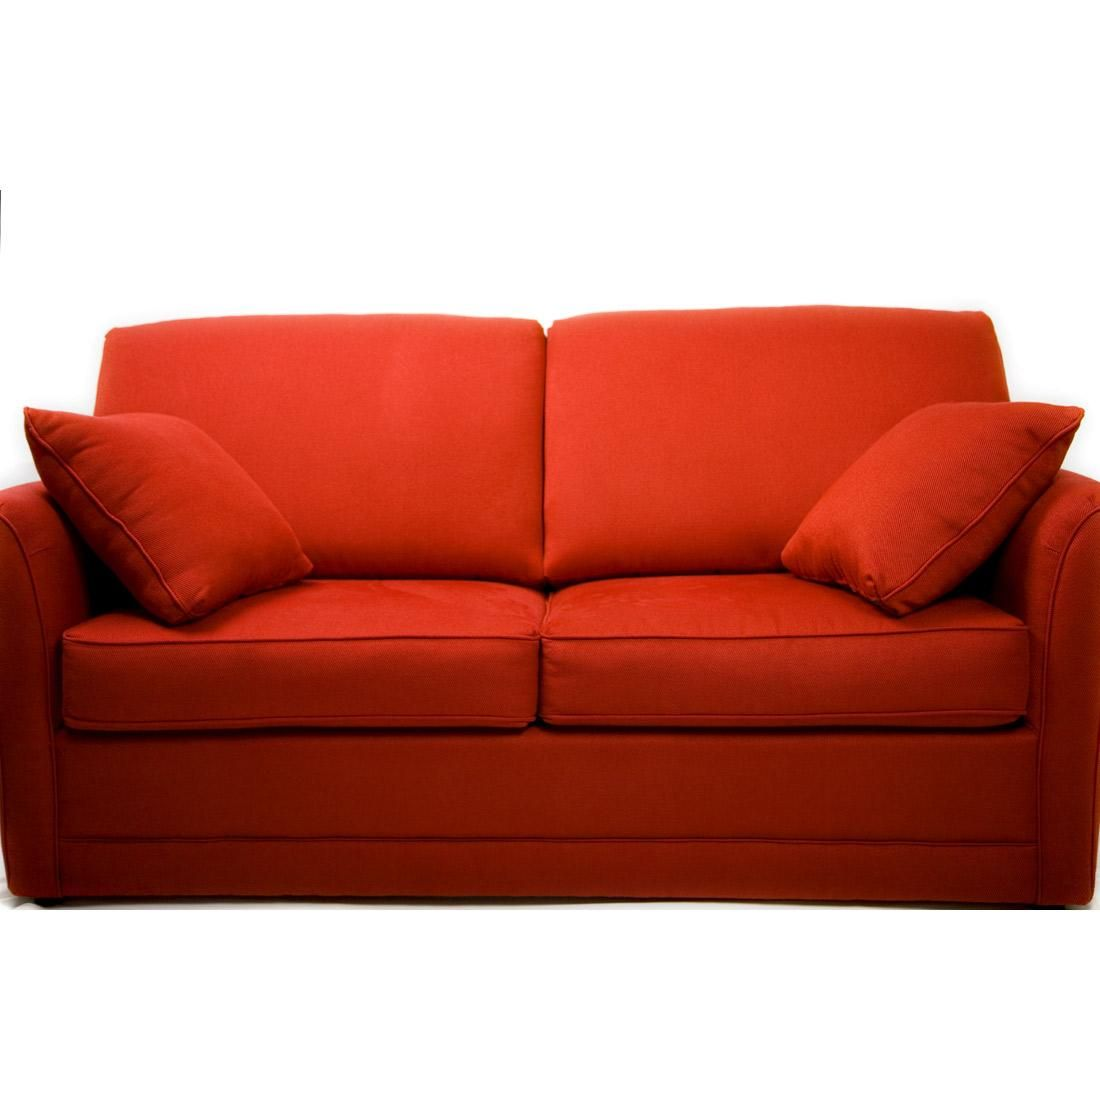 red couch tacoma set furniture wafurniture ottoman accent cheap stores wasectional lynnwood copy pillows kent sectional with sofa of saddle